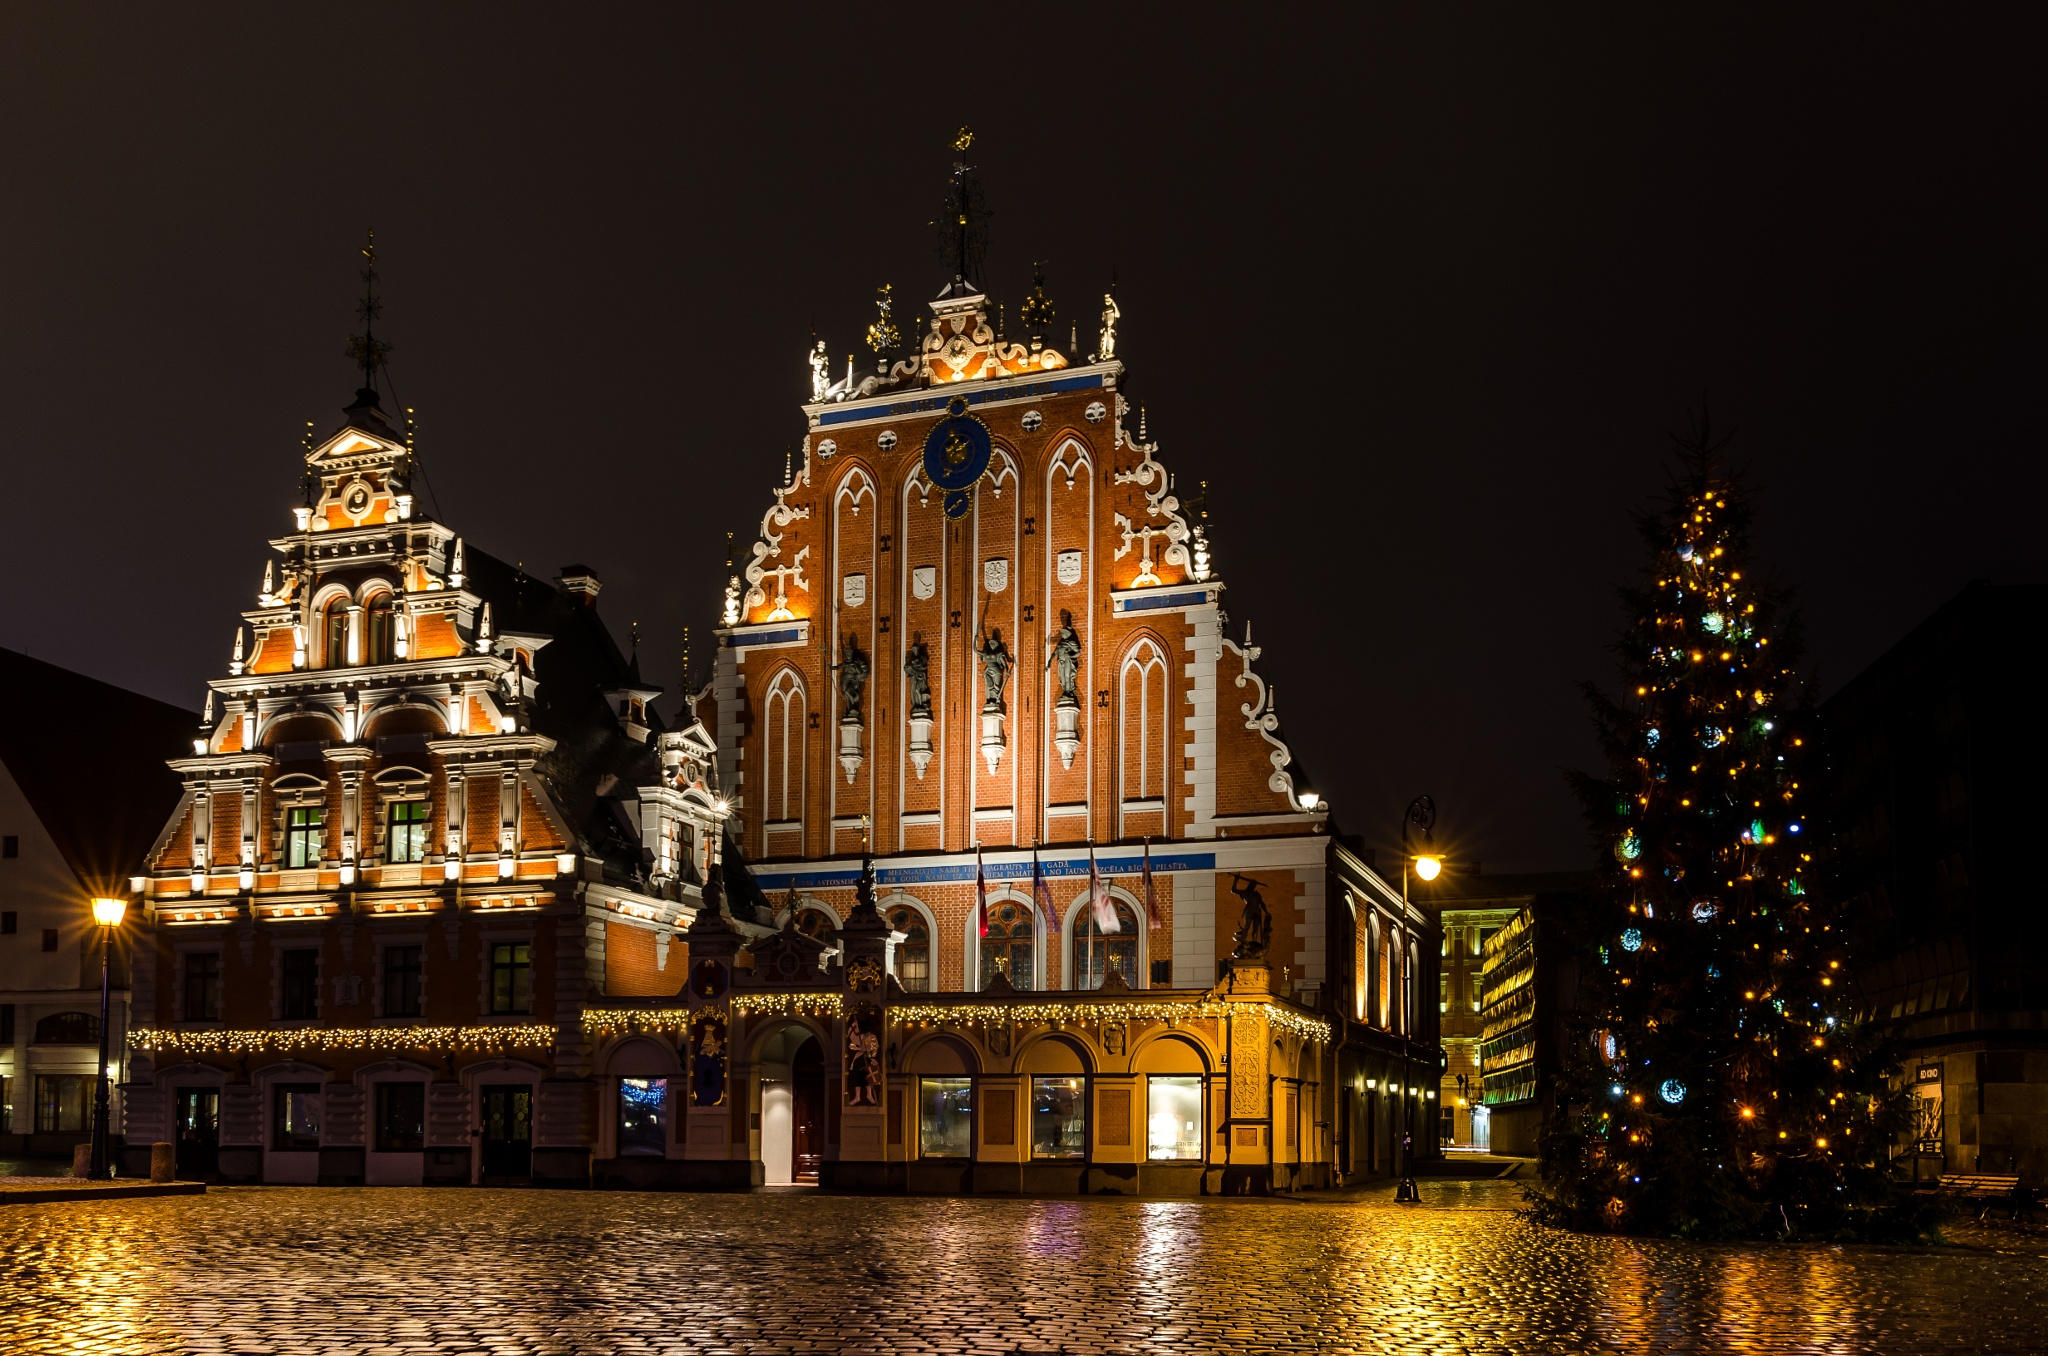 Riga by Janis Pukne